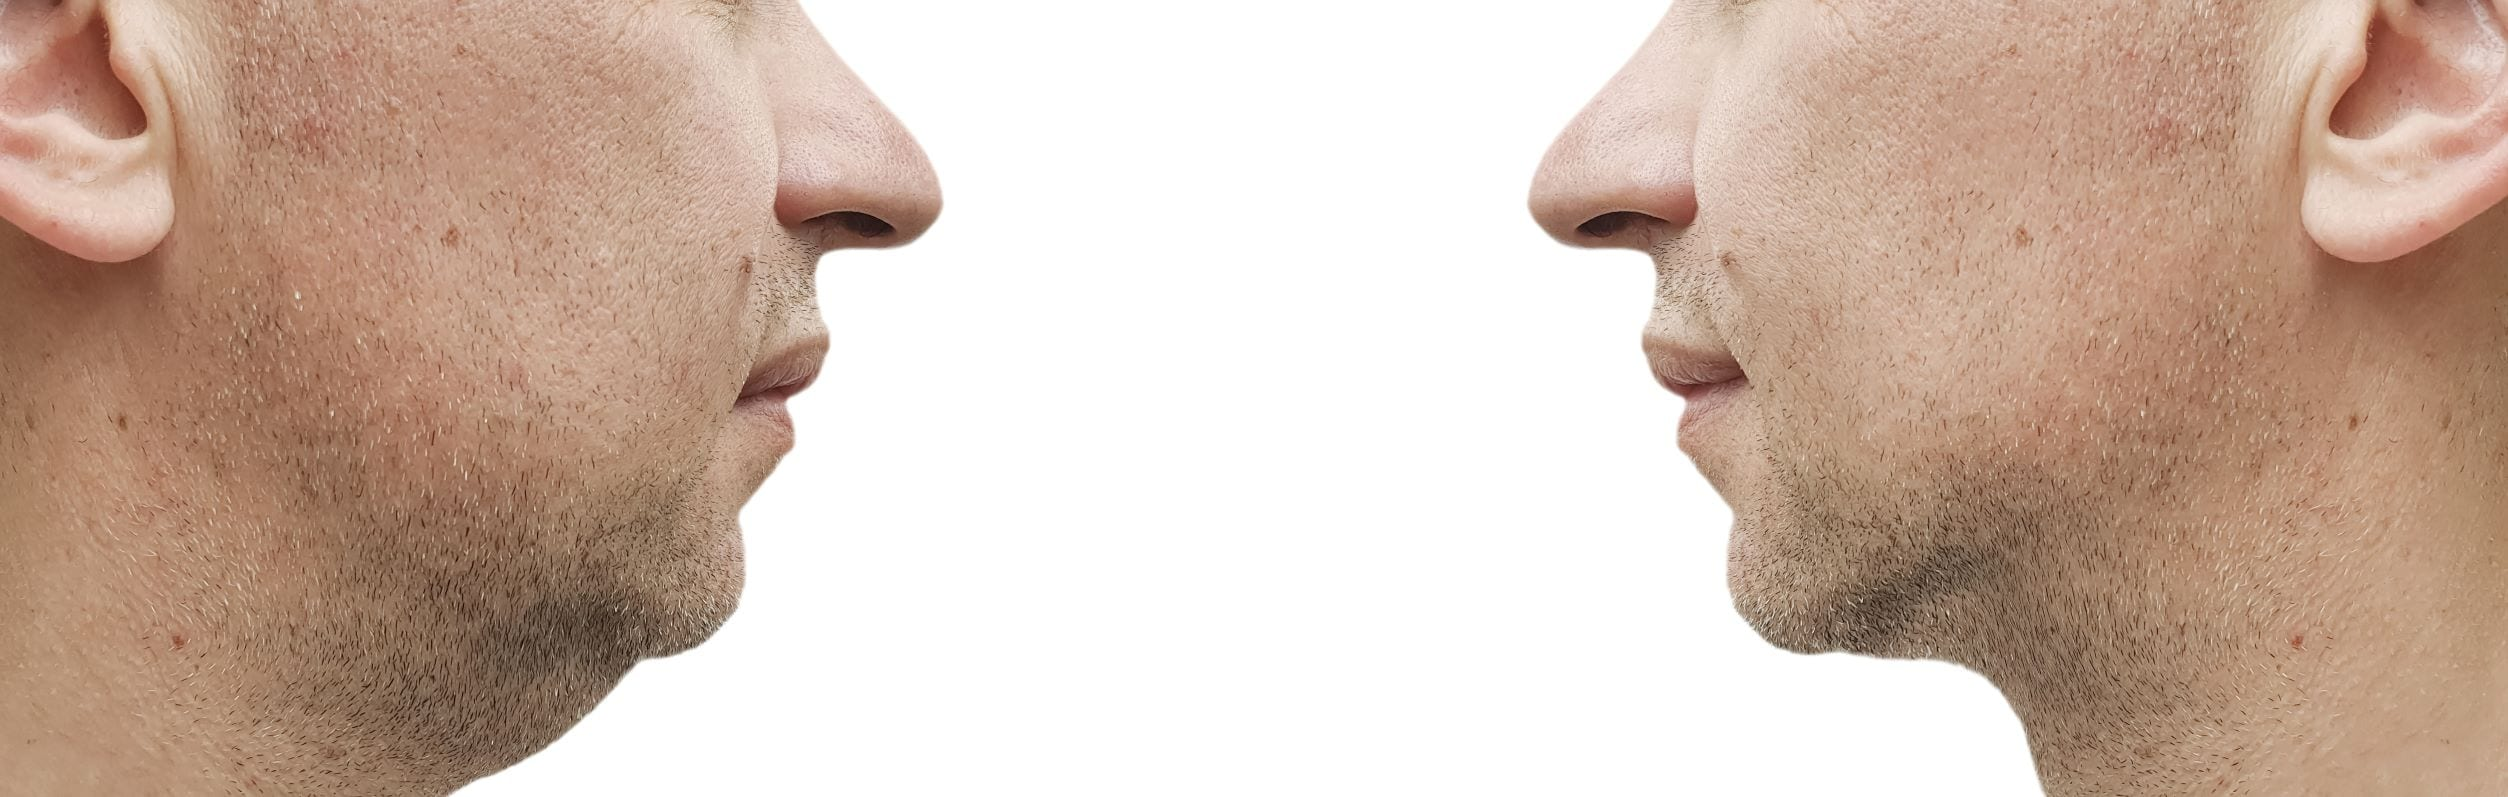 Chin Up! This is the Year to Melt Your Chin and Body Fat With Kybella